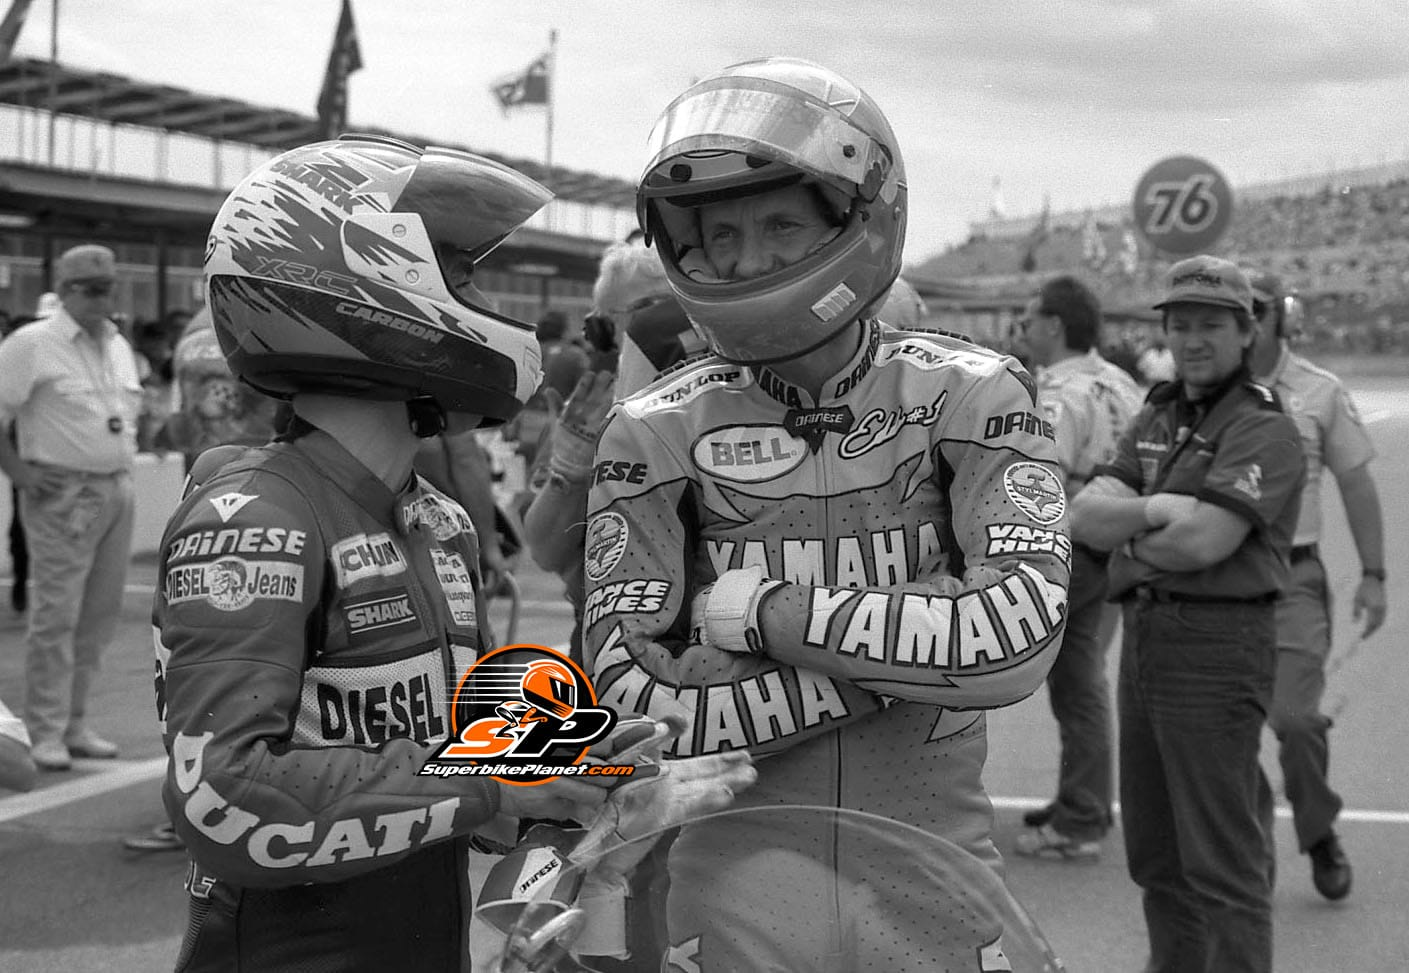 Nice watermark, eh? Welcome to our world. Raymond Roche and Eddie Lawson on the grid of the Daytona 200 in 1993.